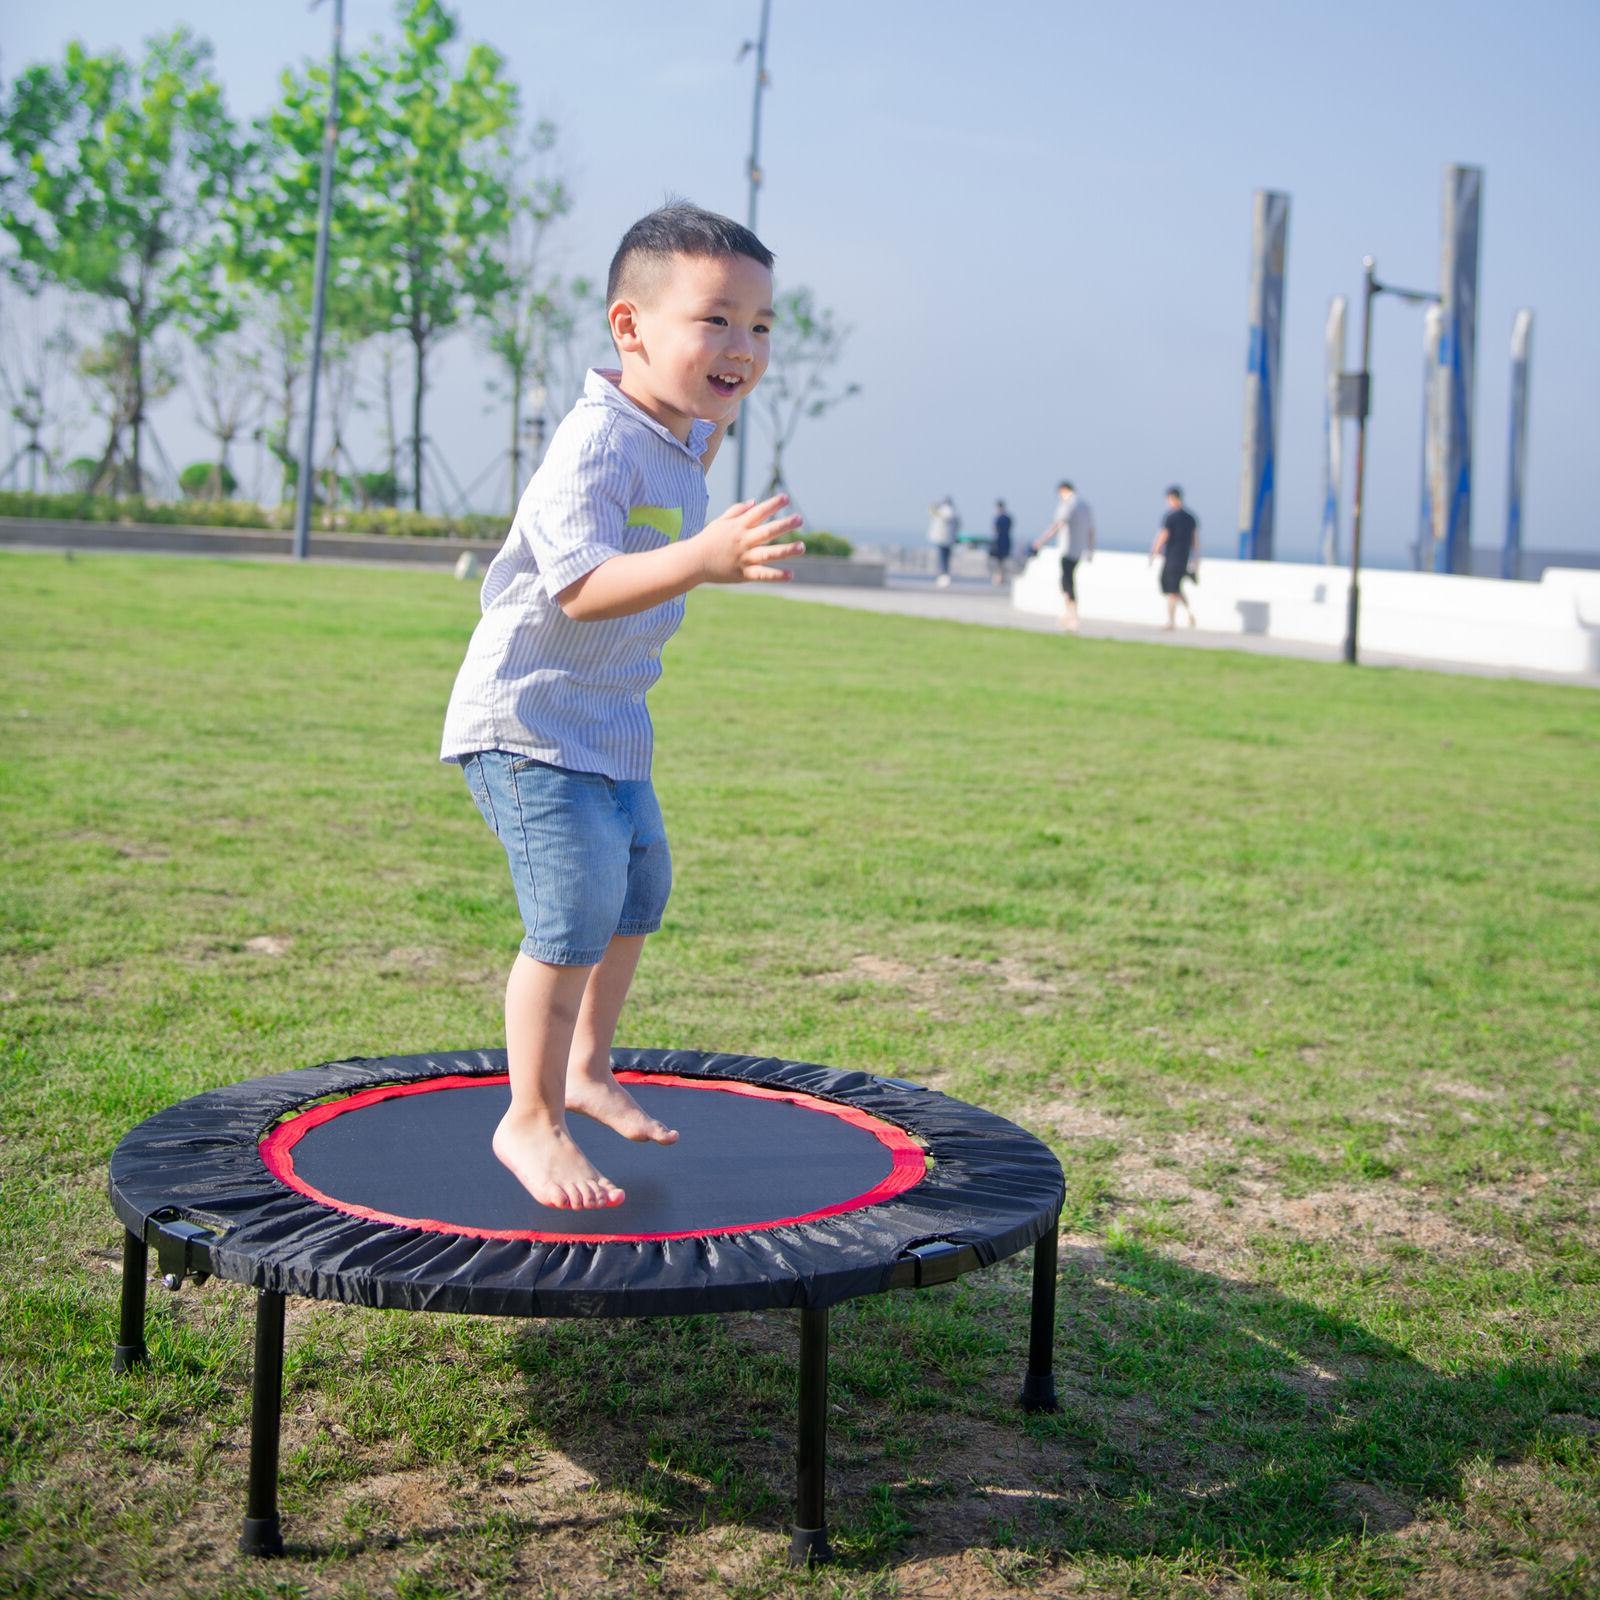 Indoor Fitness Rebounder with Safety Pad